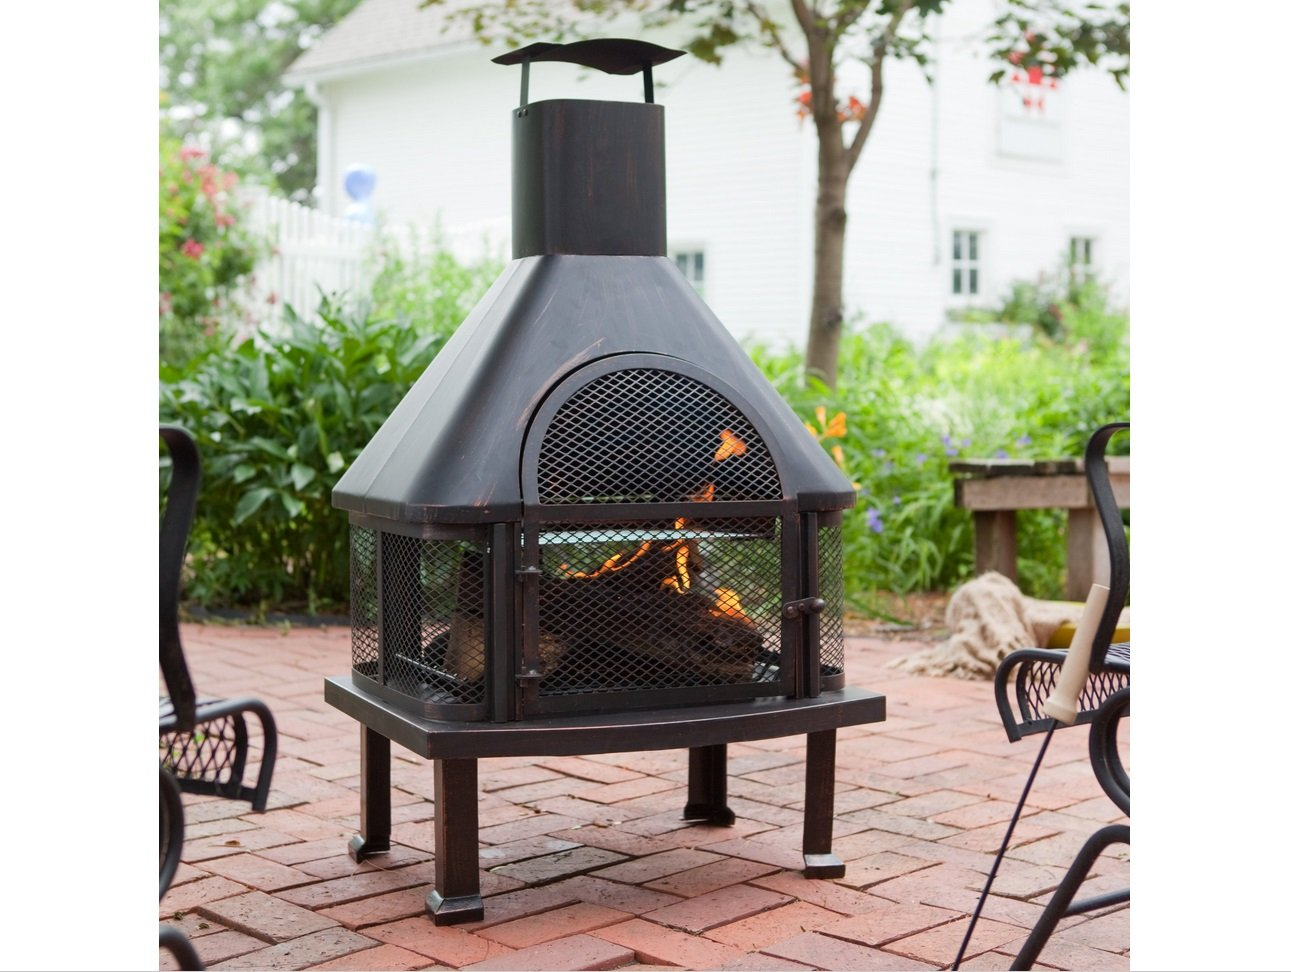 Outdoor Fireplace - Wood Burning Outdoor Fireplace with Smokestack; Gather Around the Fire in Your Backyard with This Modern Outdoor Fireplace by Red Ember